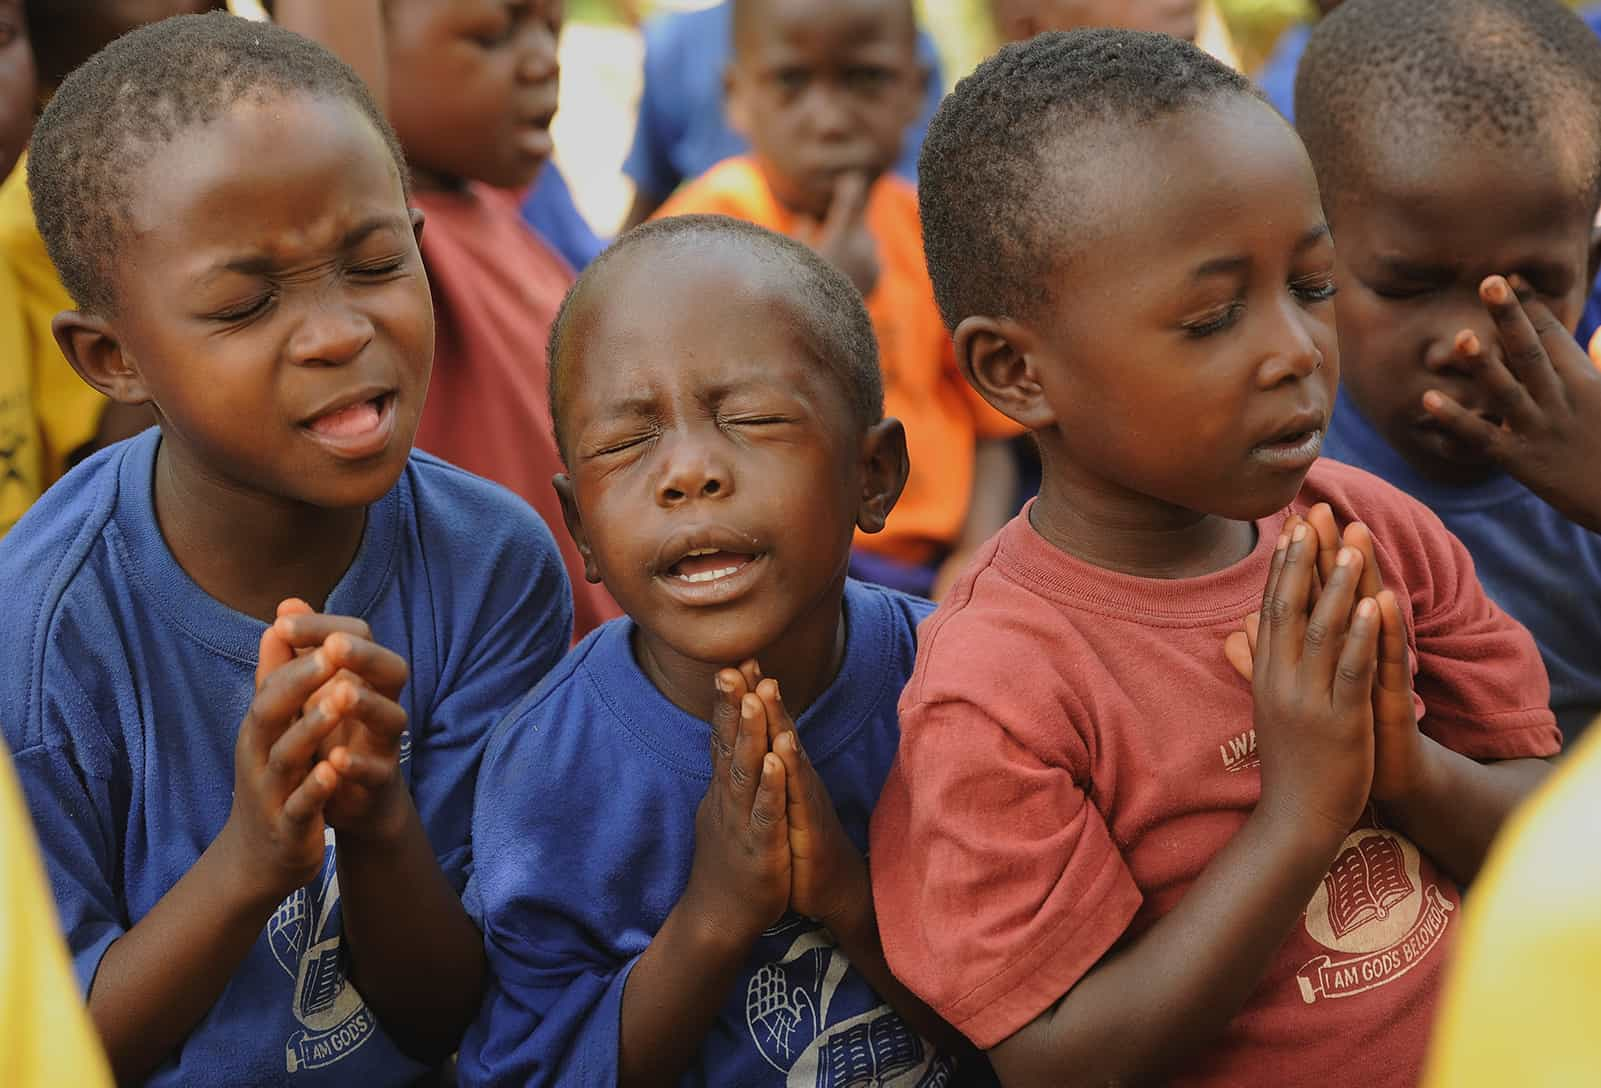 Three boys from Uganda fervently praying